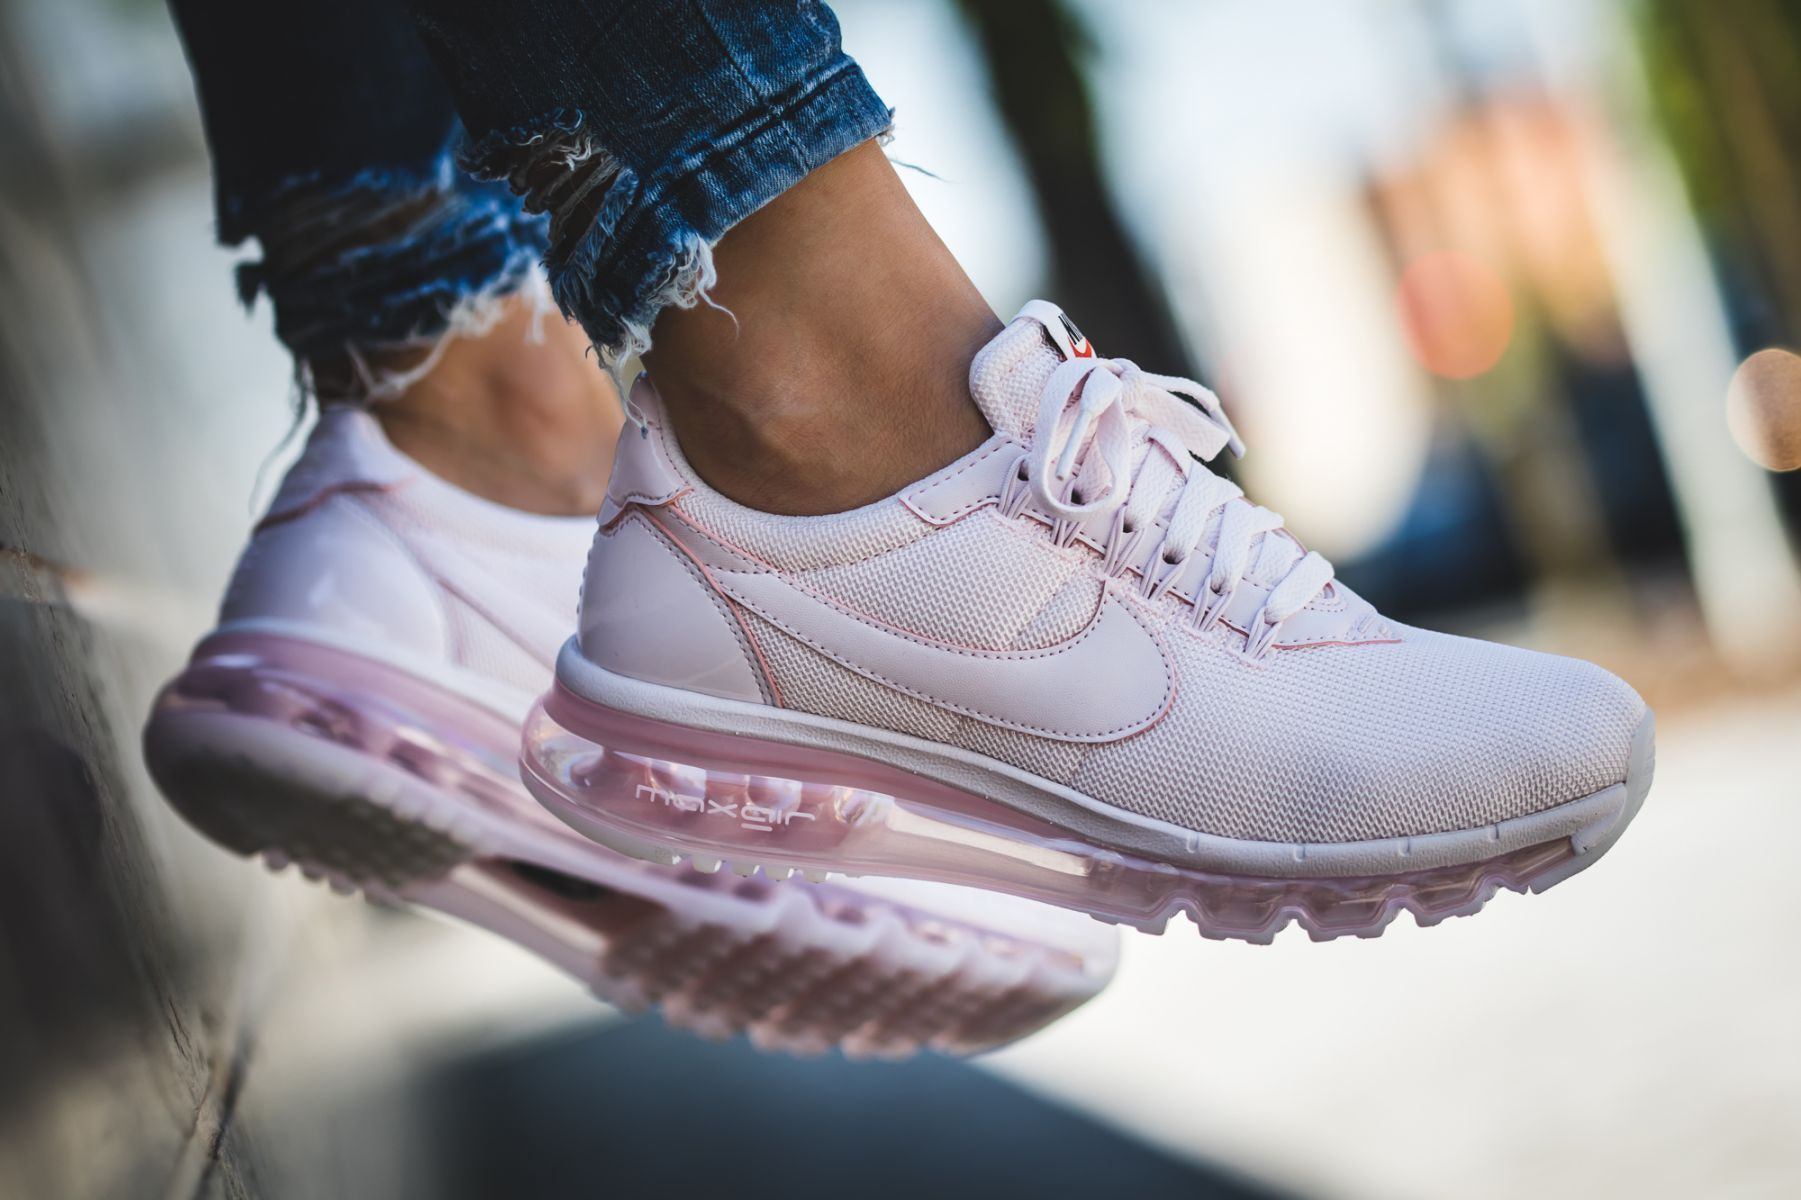 eda2fb827e NIKE WMNS AIR MAX LD ZERO PEARL PINK TRAINING SHOES 911180 600 ...